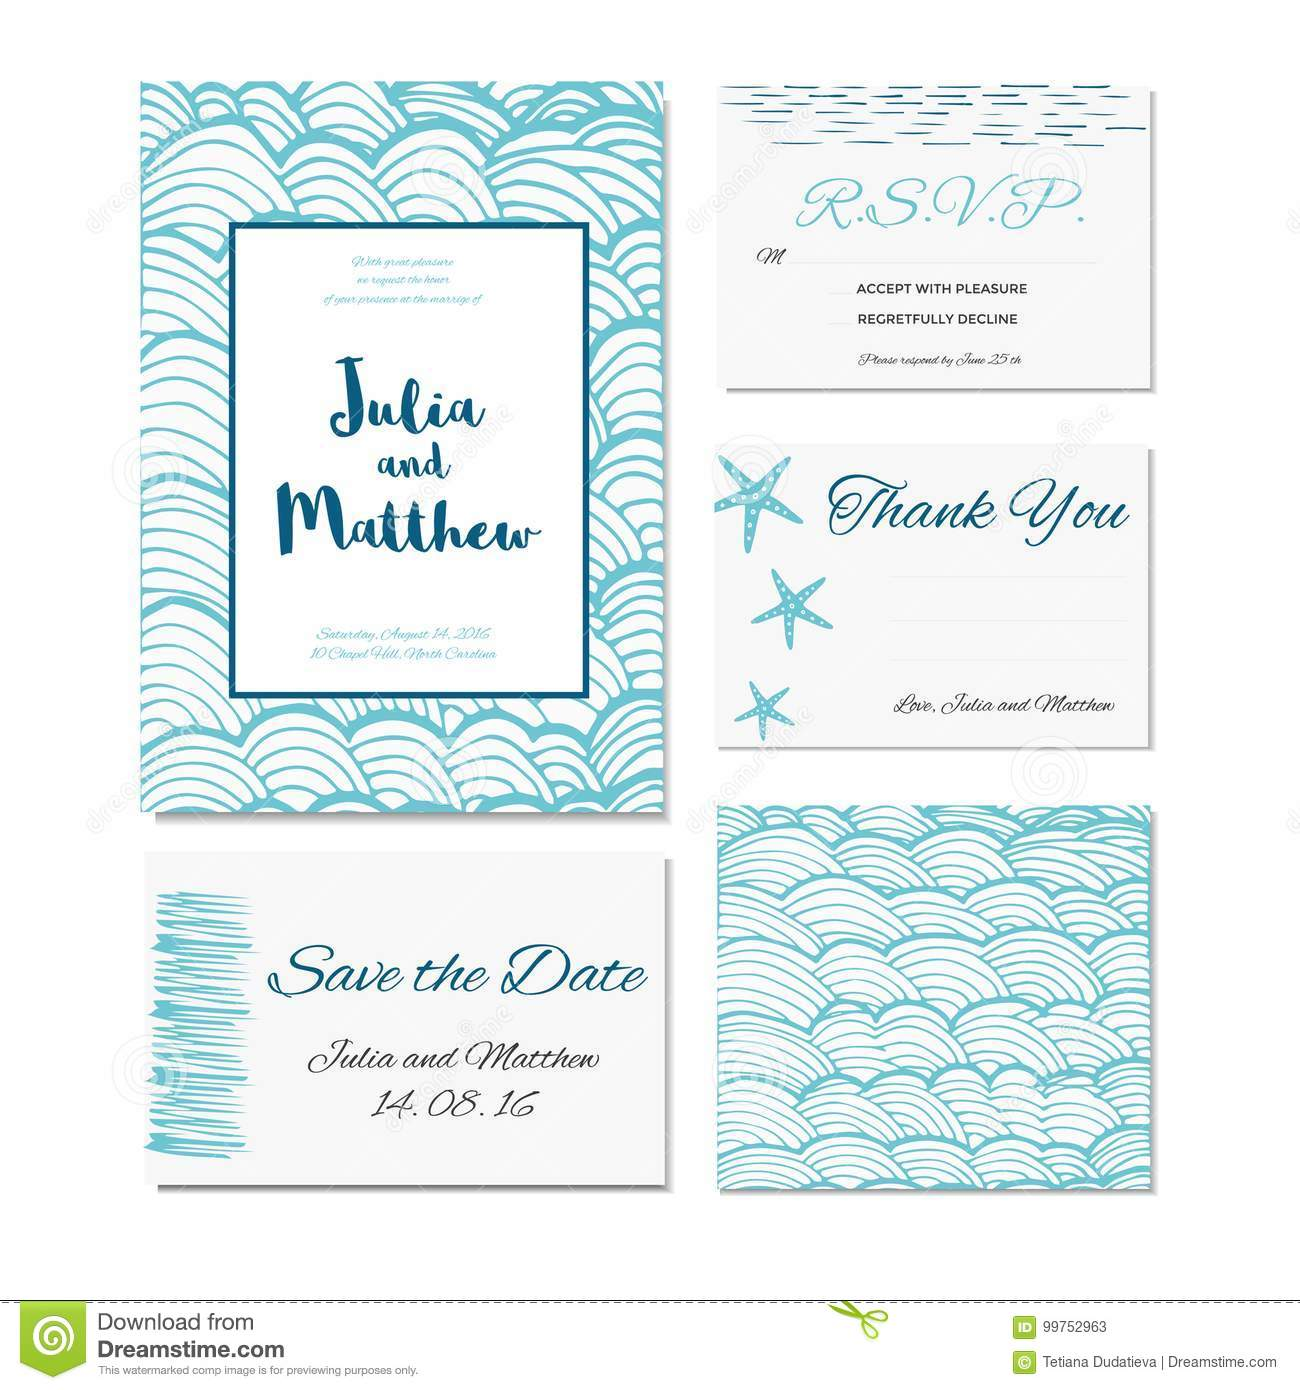 Wedding invitation thank you save the date baby shower menu wedding invitation thank you save the date baby shower menu filmwisefo